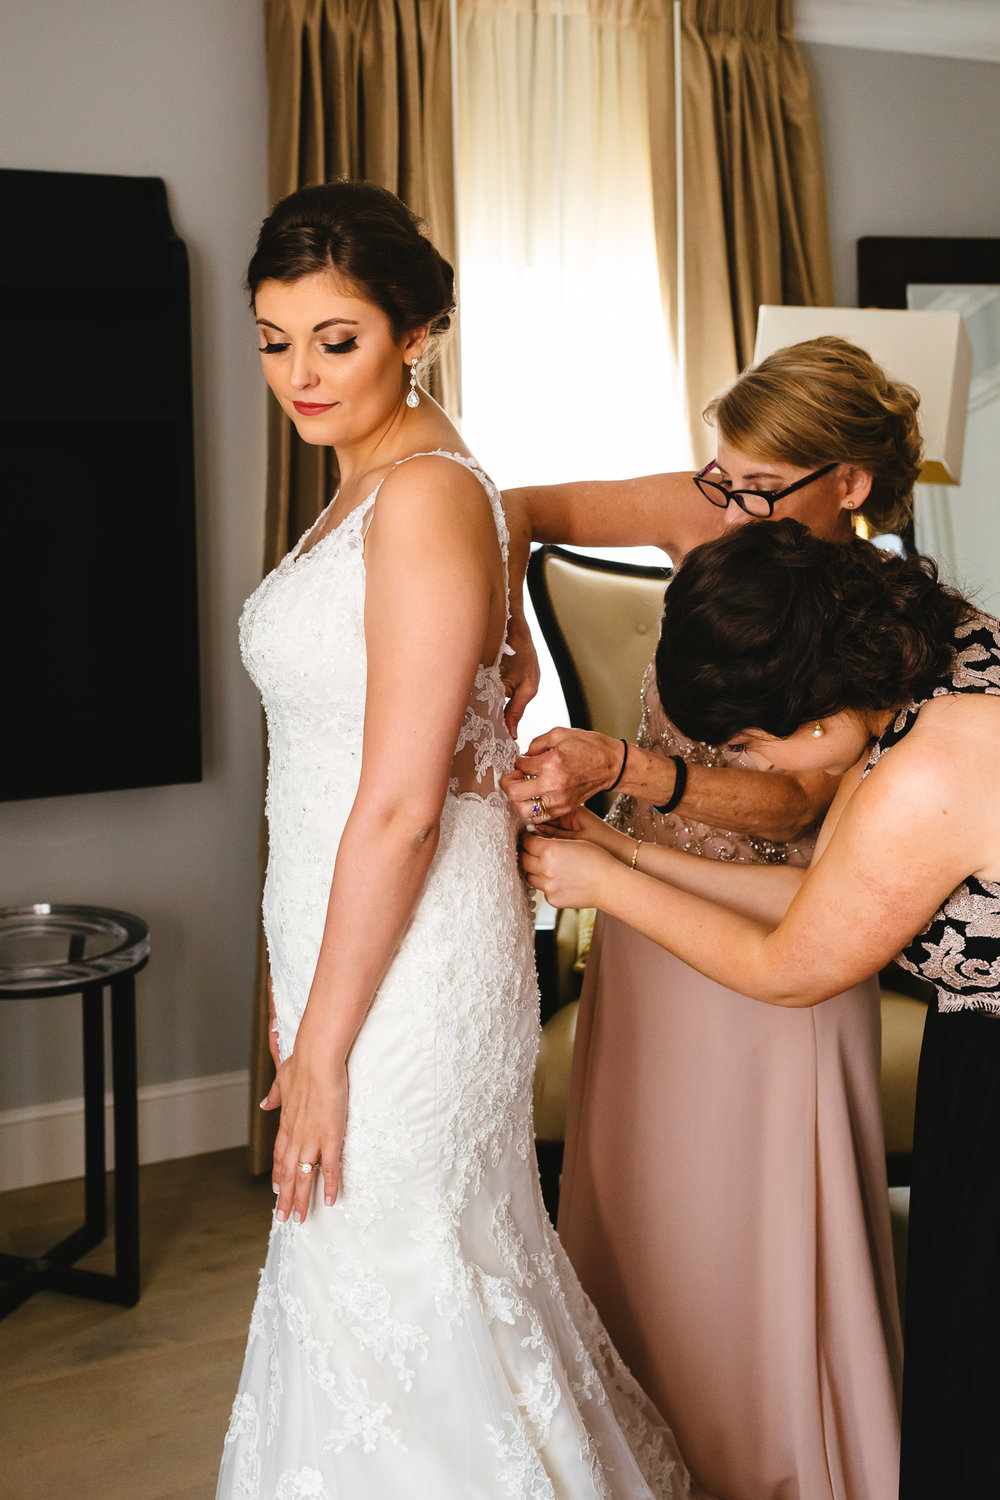 Marriott_Syracuse_Wedding_Calypso_Rae_Photography-17.jpg